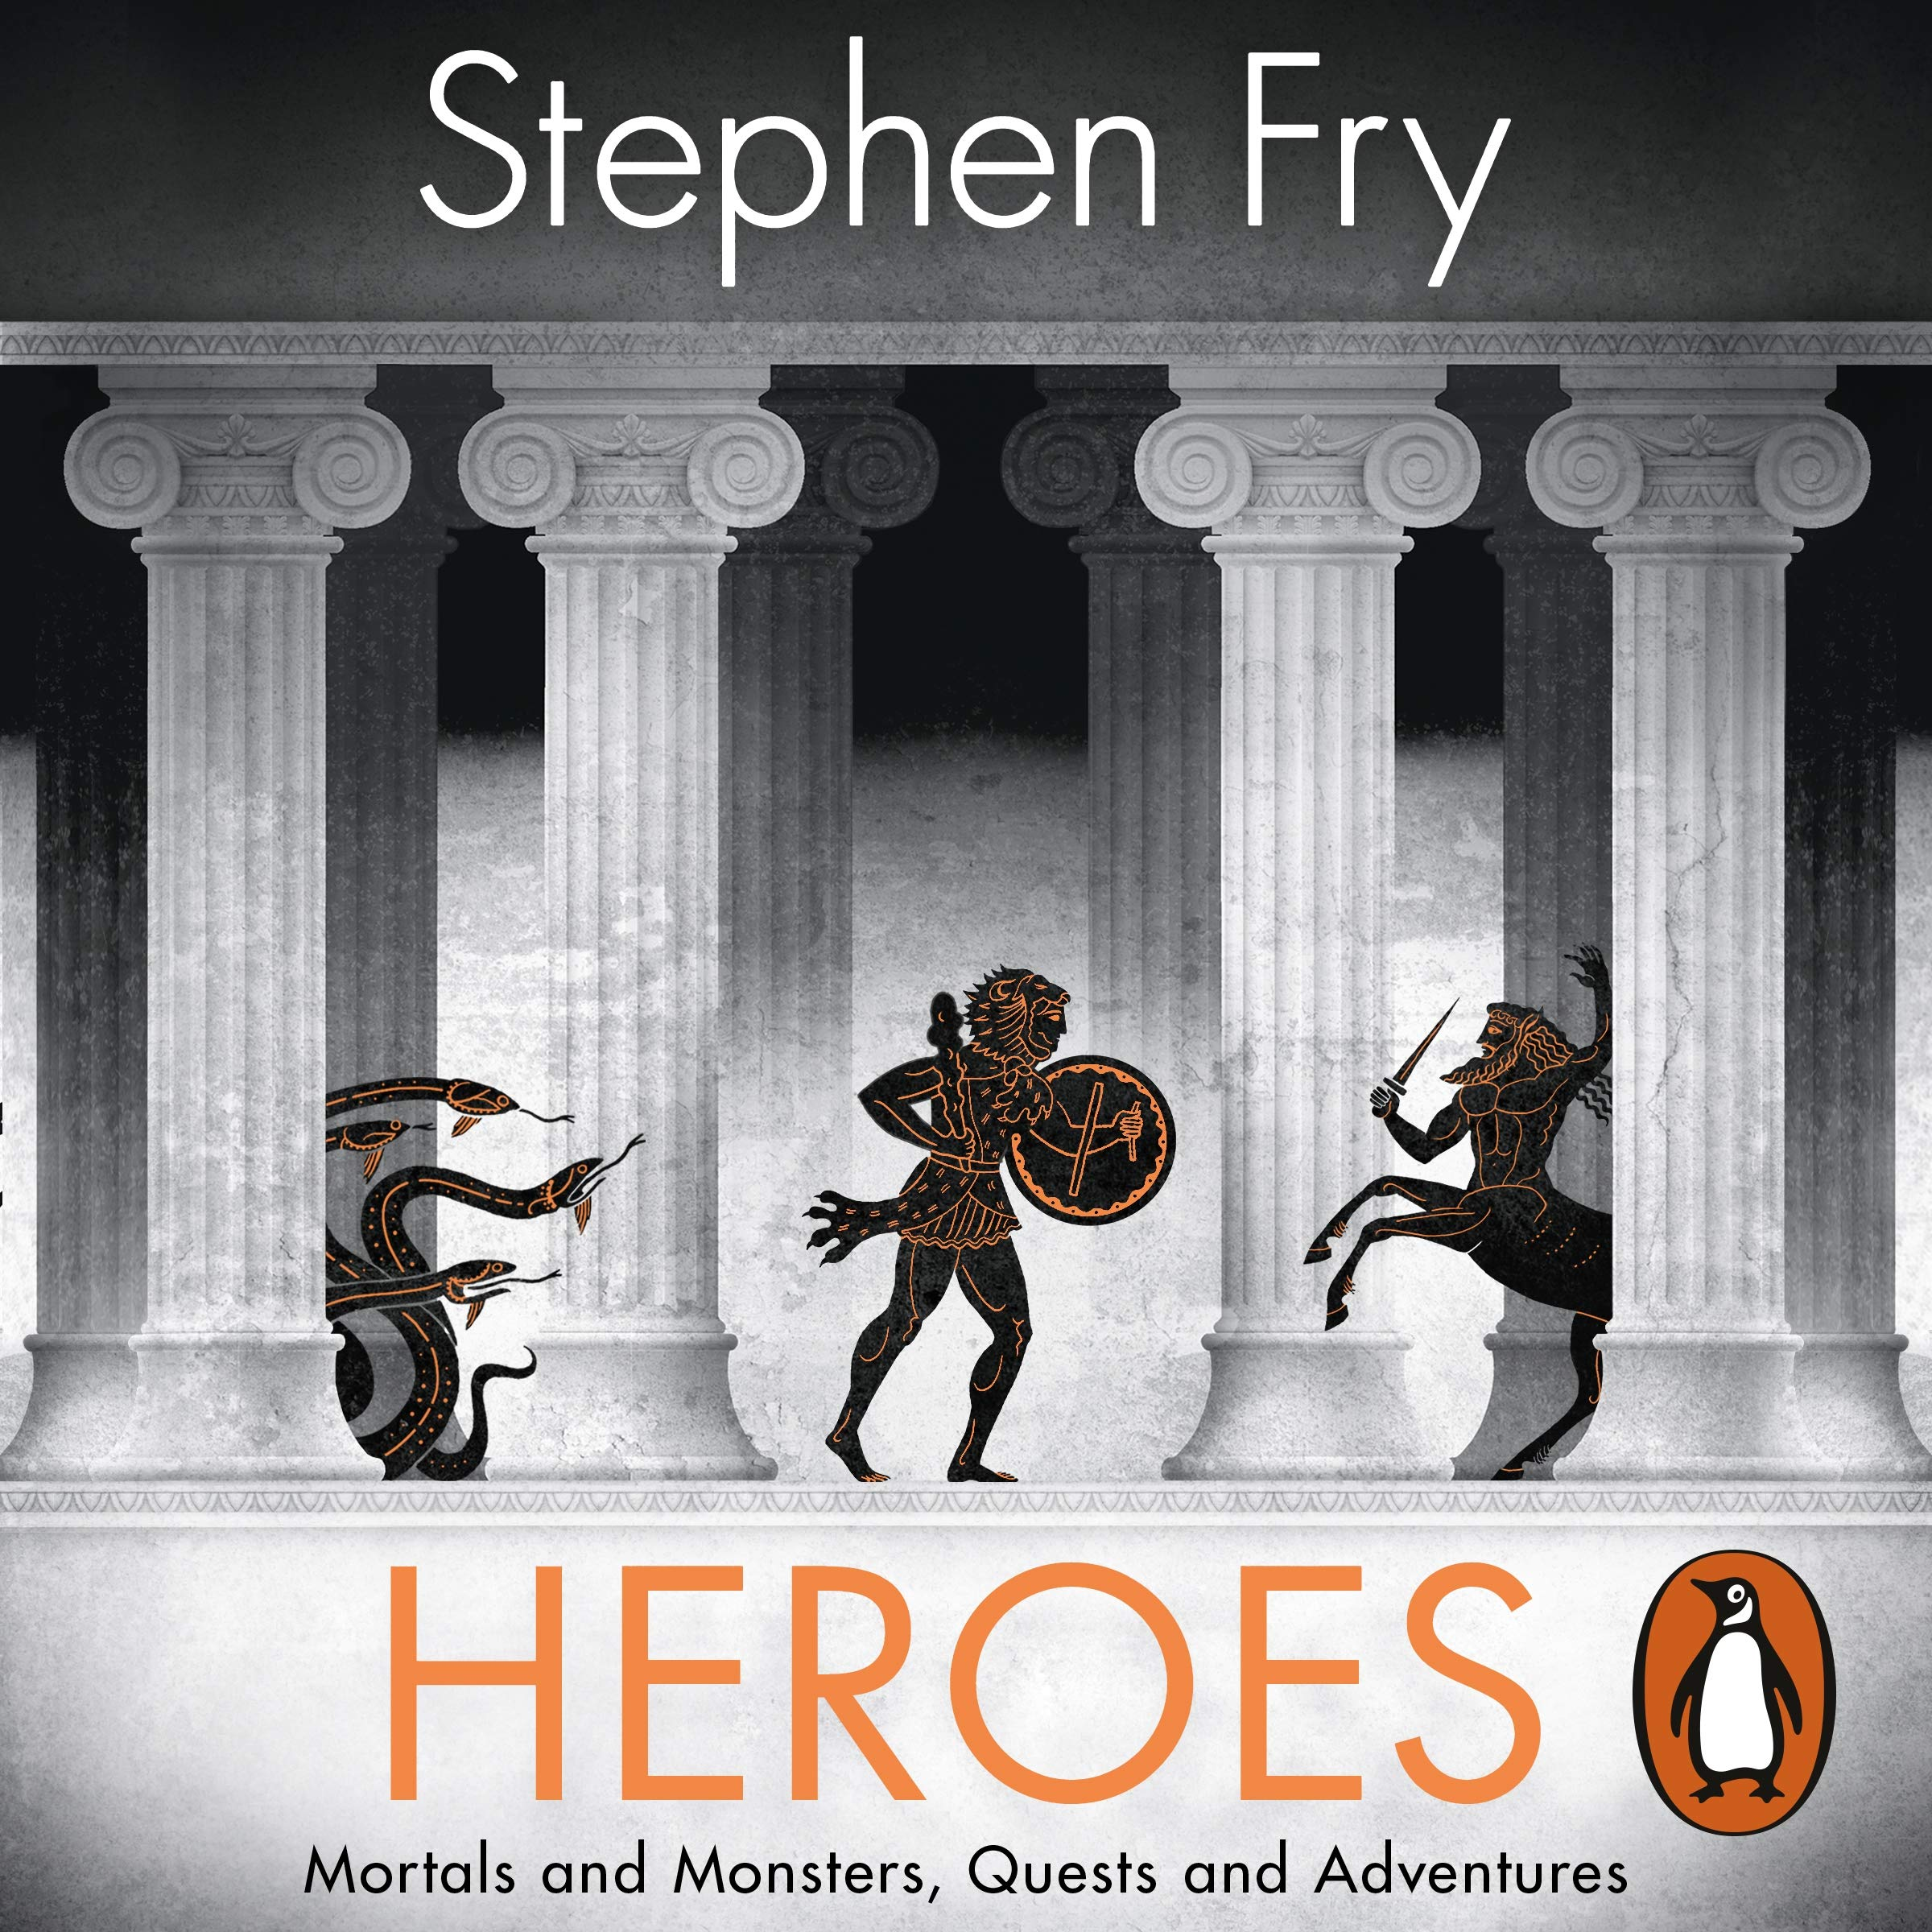 Stephen Fry  Heroes Mortals and Monsters, Quests and Adventures